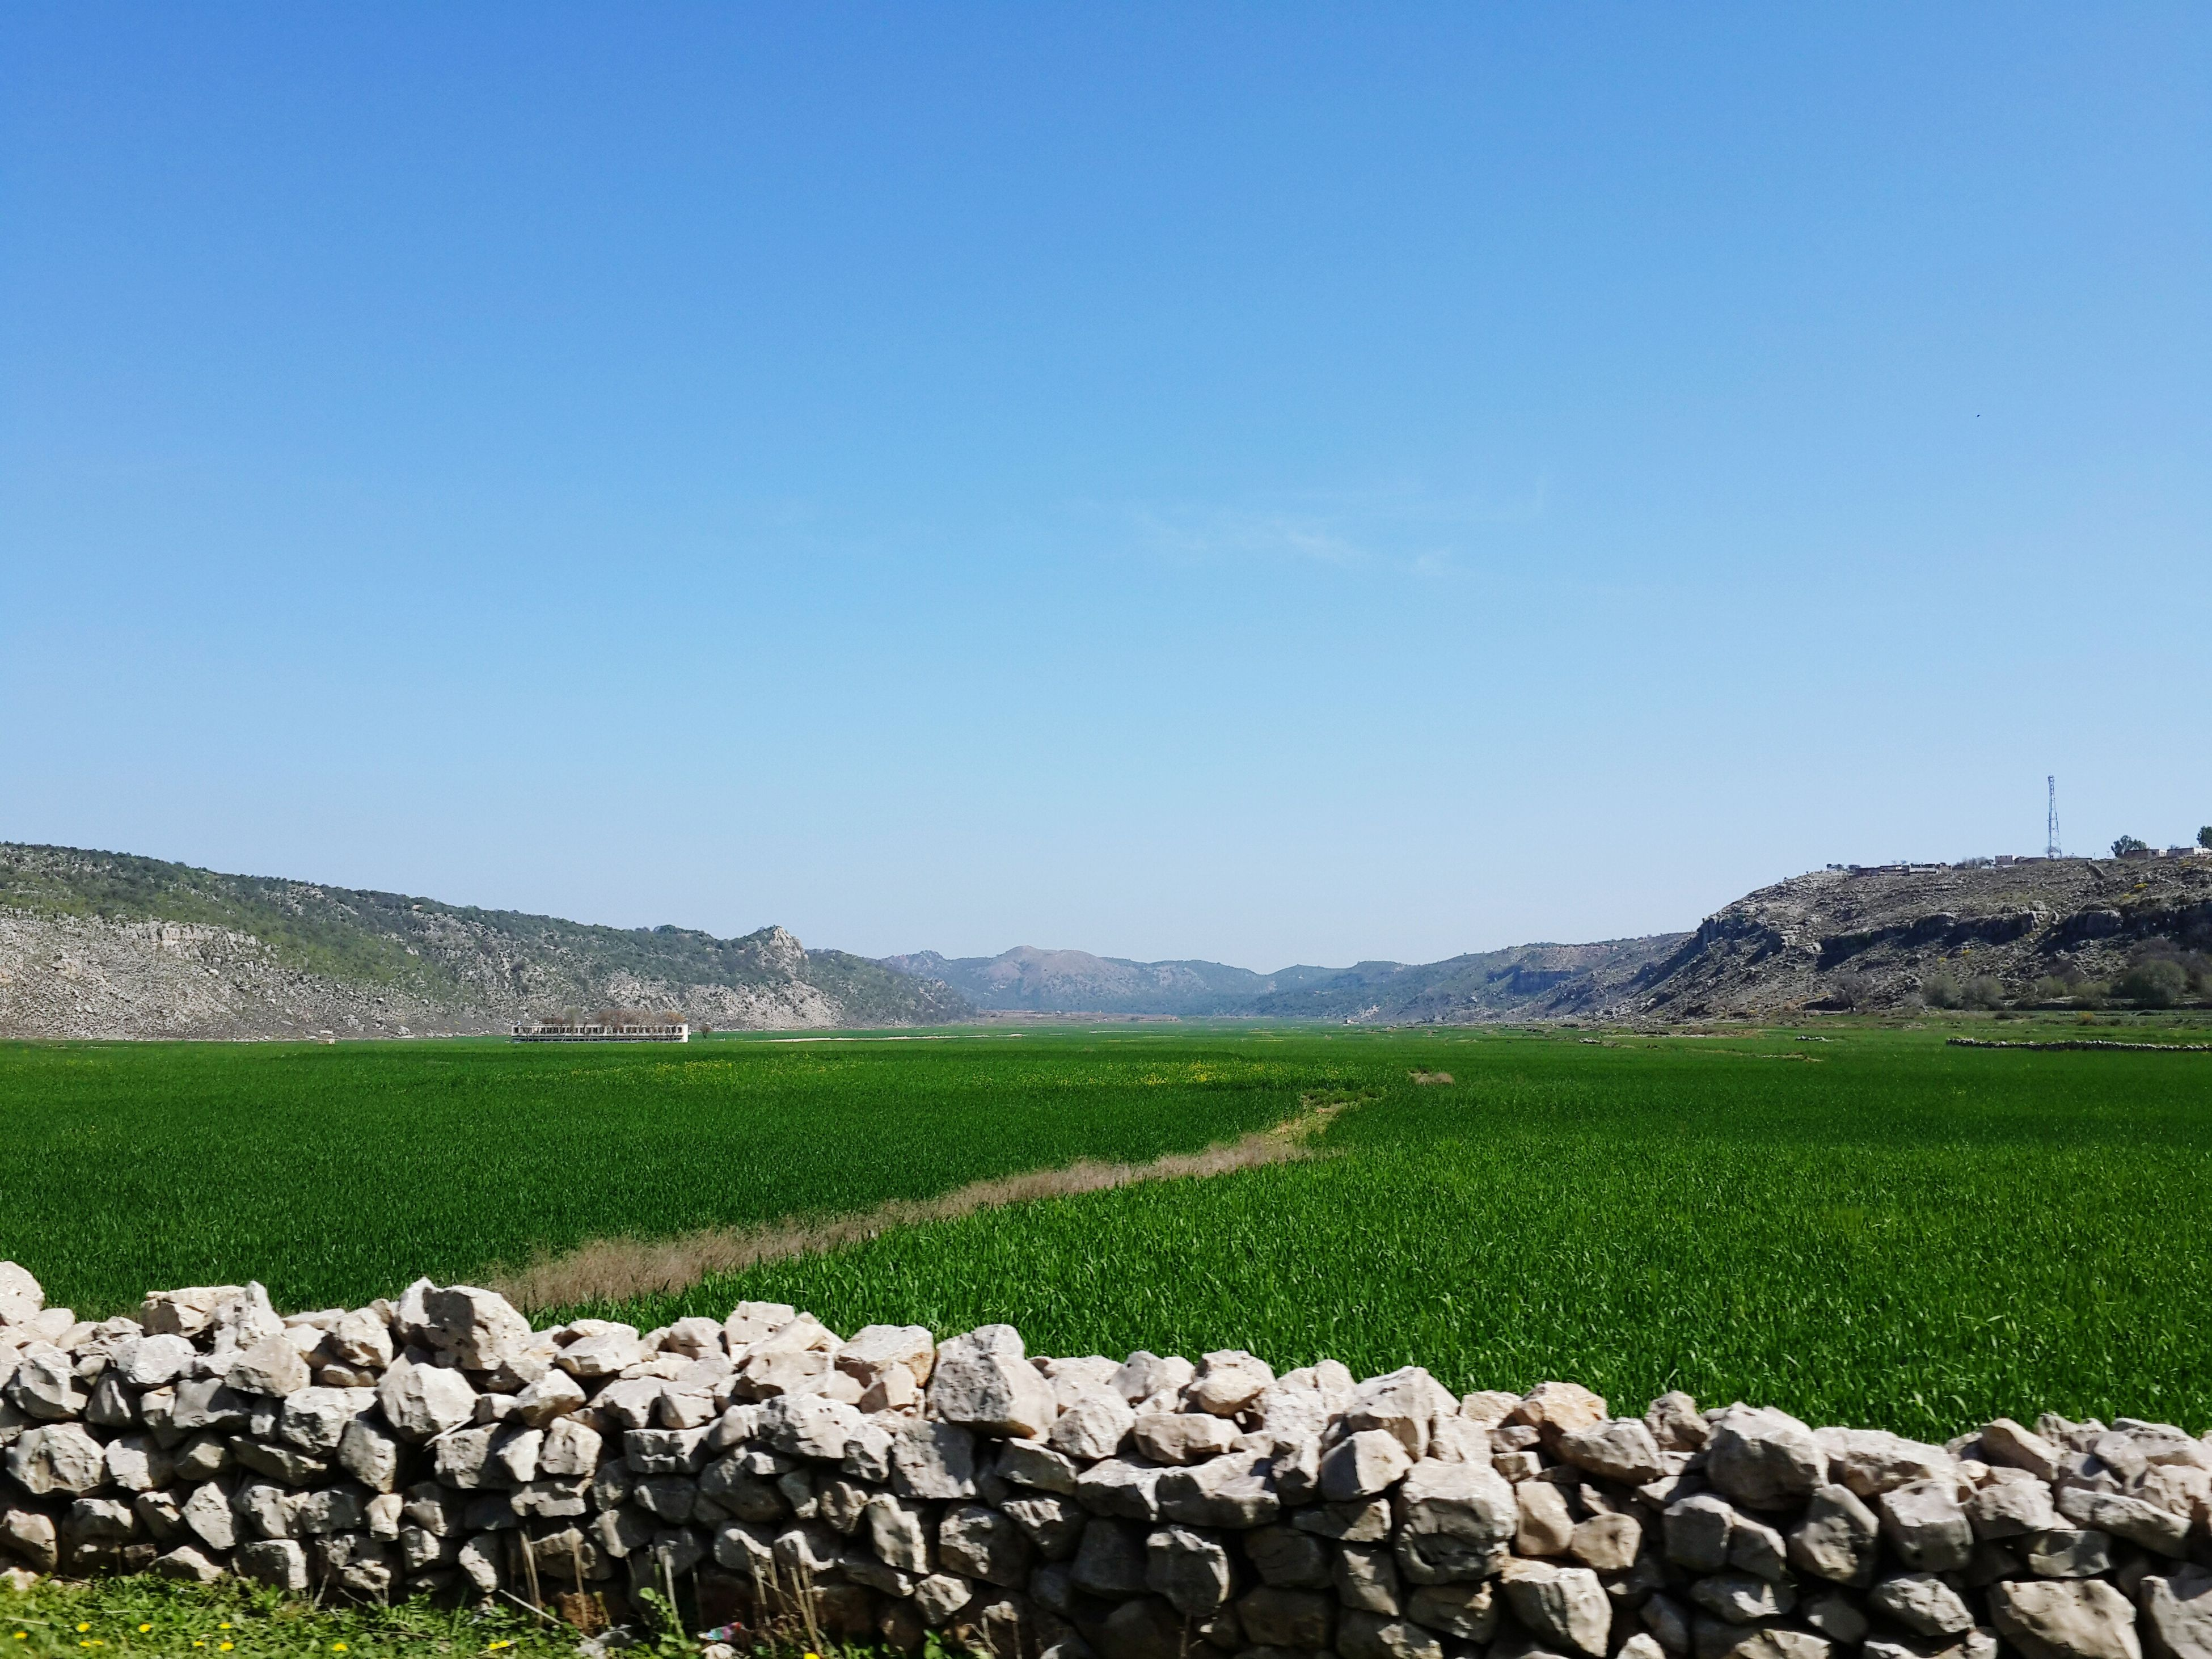 clear sky, landscape, tranquil scene, field, copy space, tranquility, grass, rural scene, blue, scenics, nature, agriculture, beauty in nature, green color, stone - object, growth, day, stone wall, sky, plant